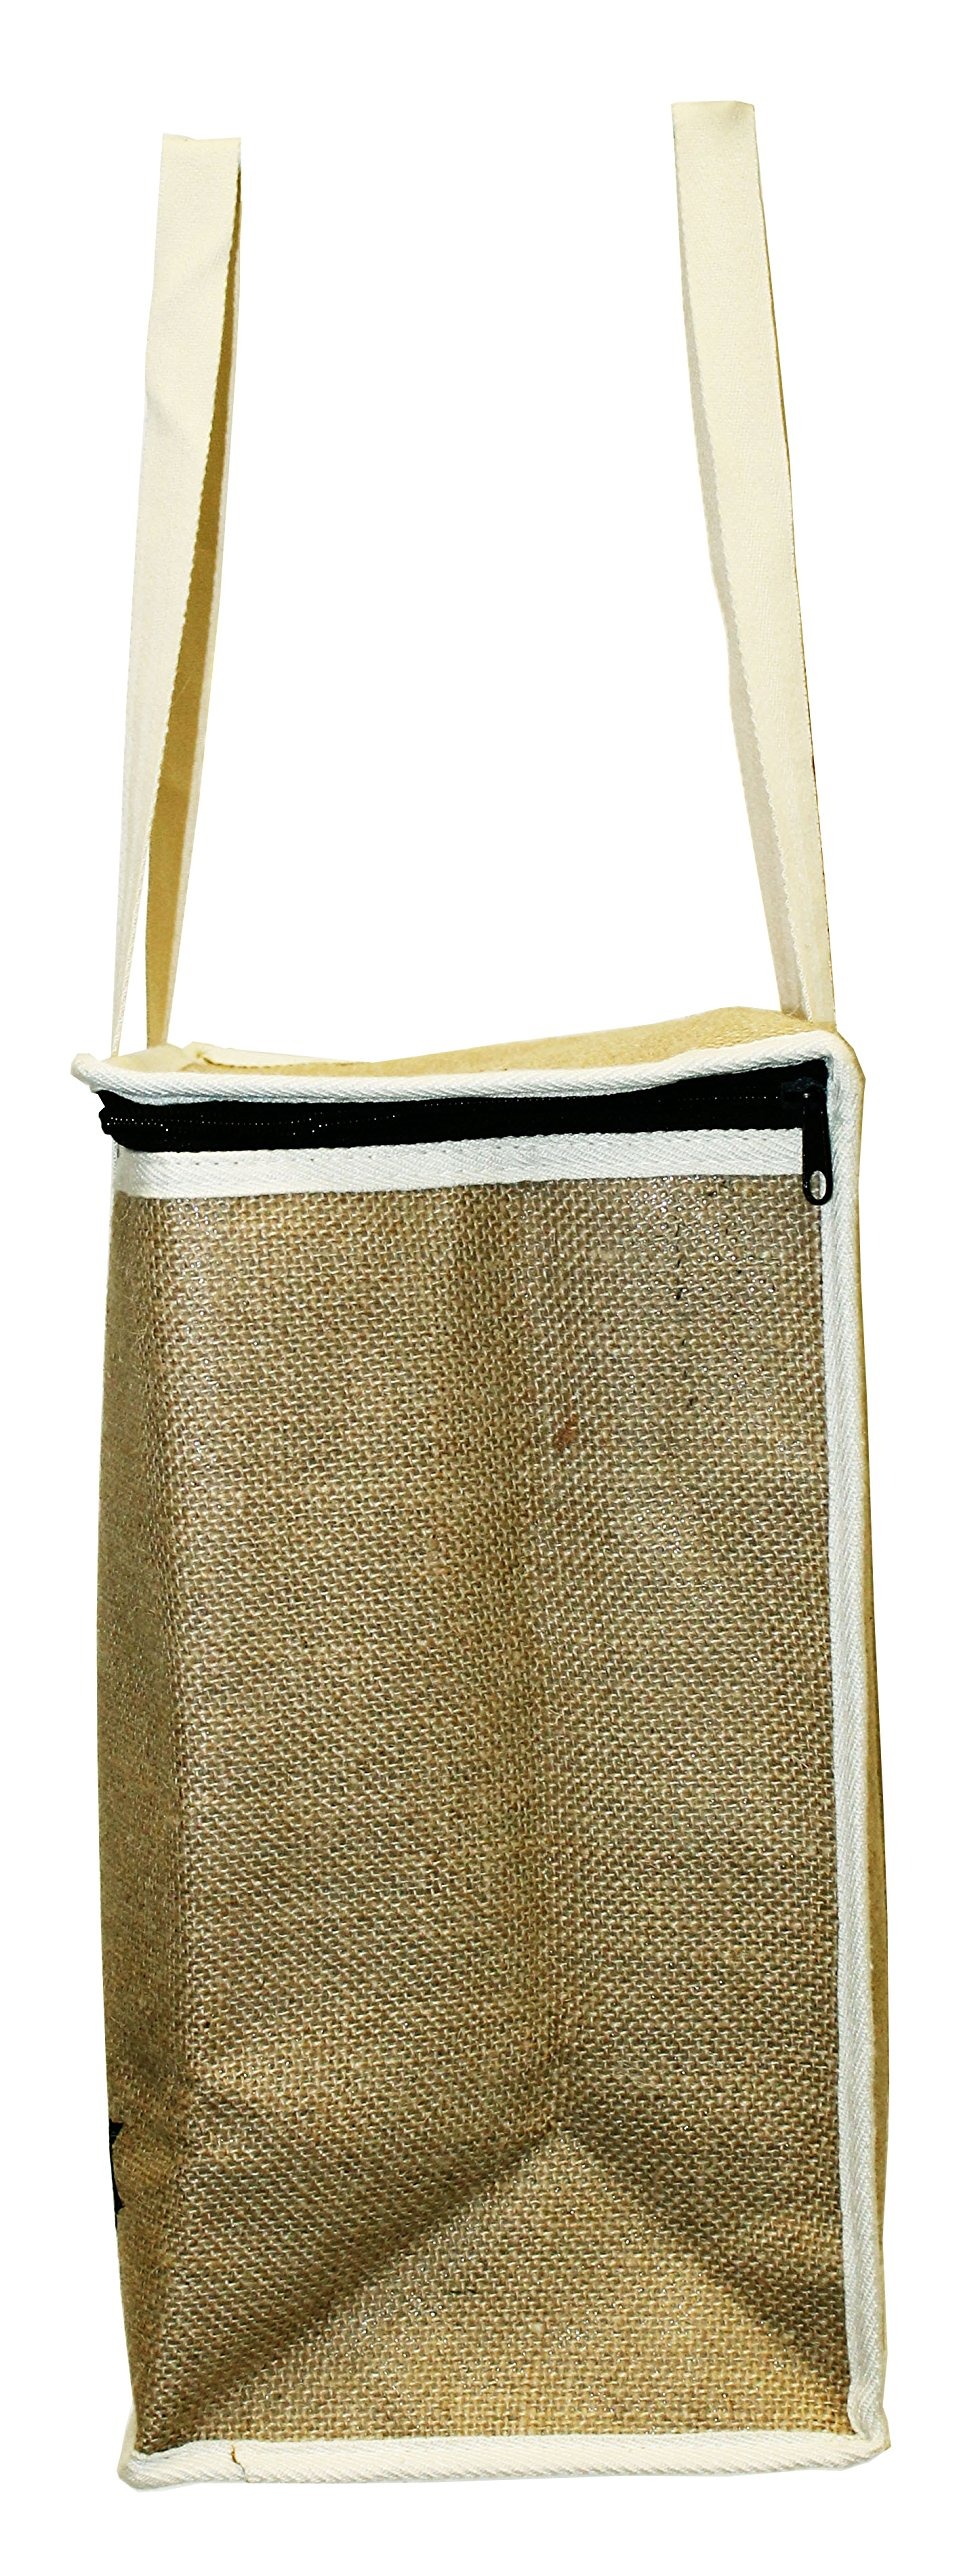 Earthwise Large Jute Insulated Shopping Grocery Bags w ZIPPER TOP LID Thermal Cooler Tote KEEPS FOOD HOT OR COLD (Set of 2) by Earthwise (Image #5)